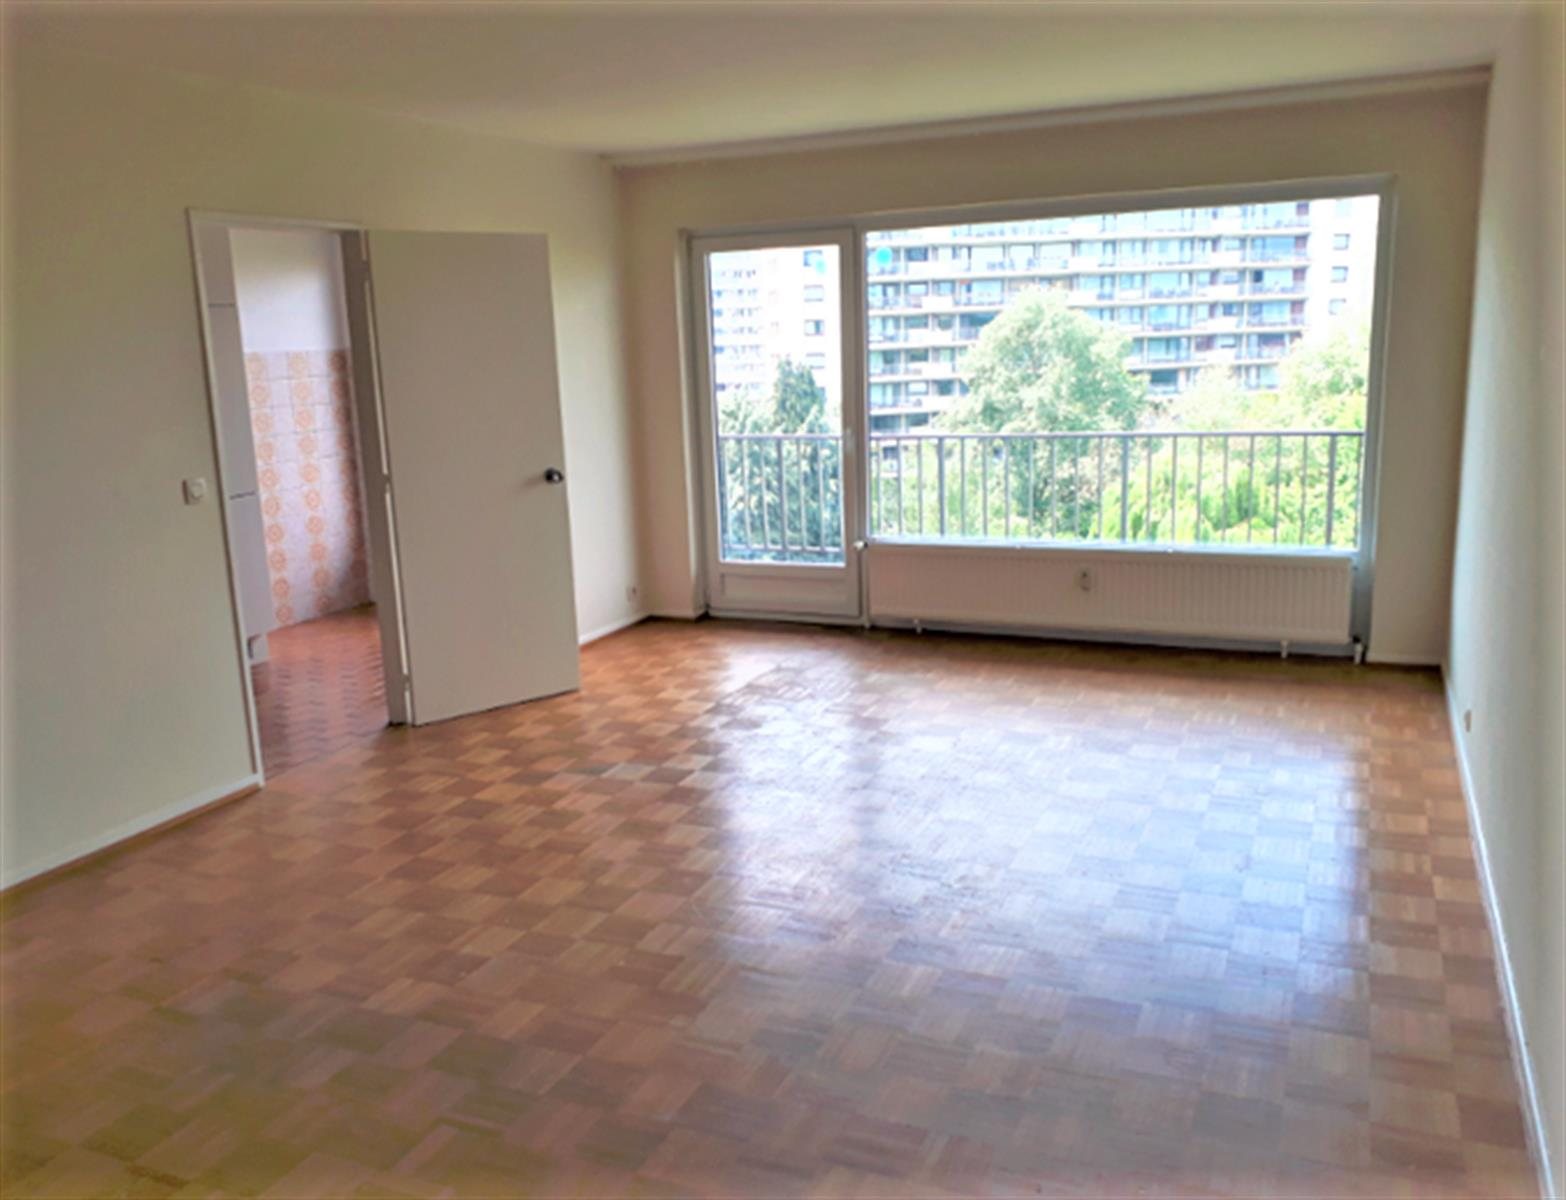 Appartement - Evere - #4284724-2